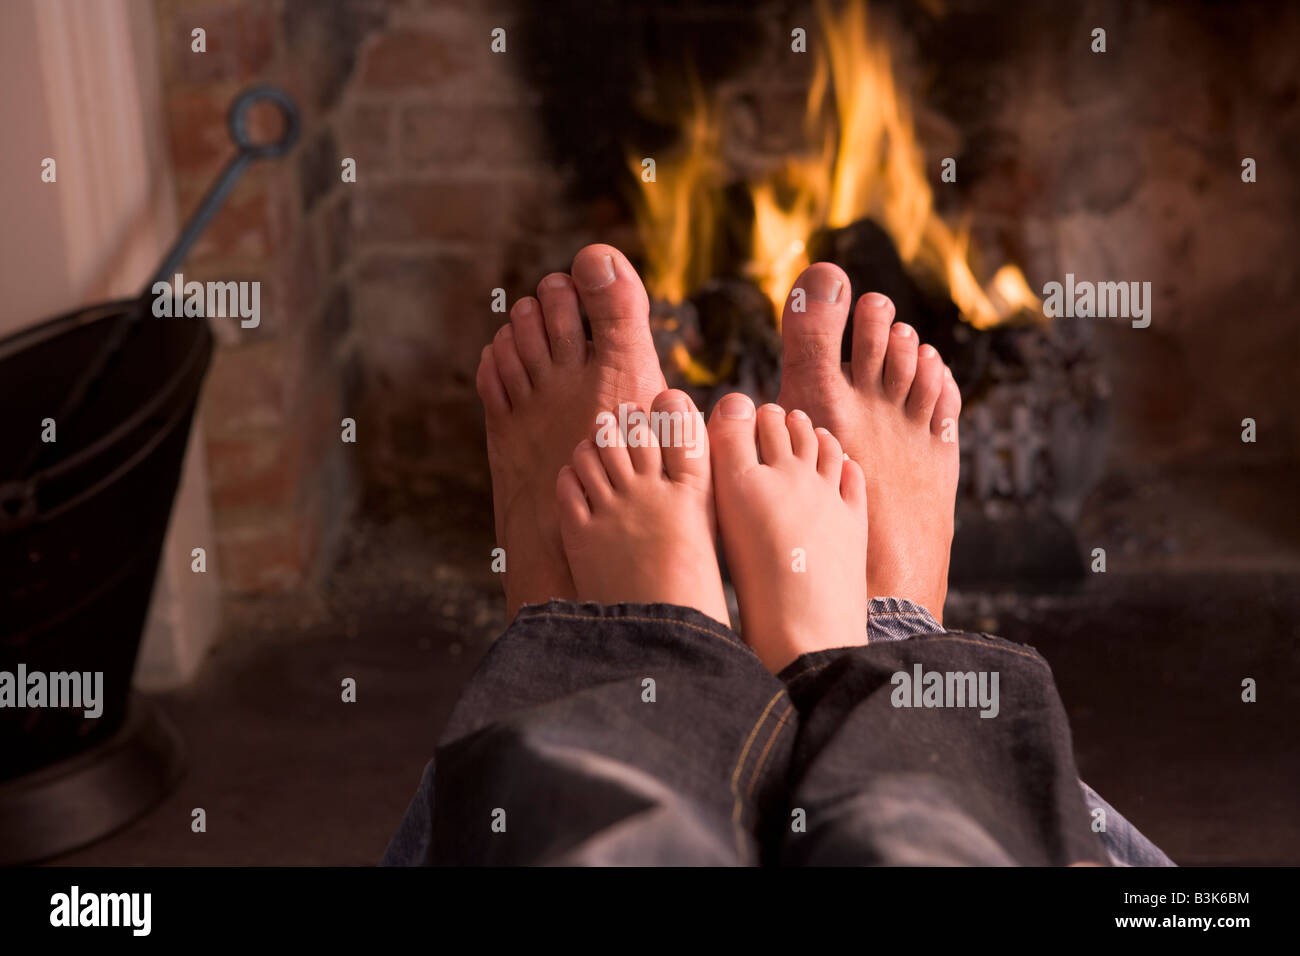 Father and son's Feet warming at a fireplace - Stock Image